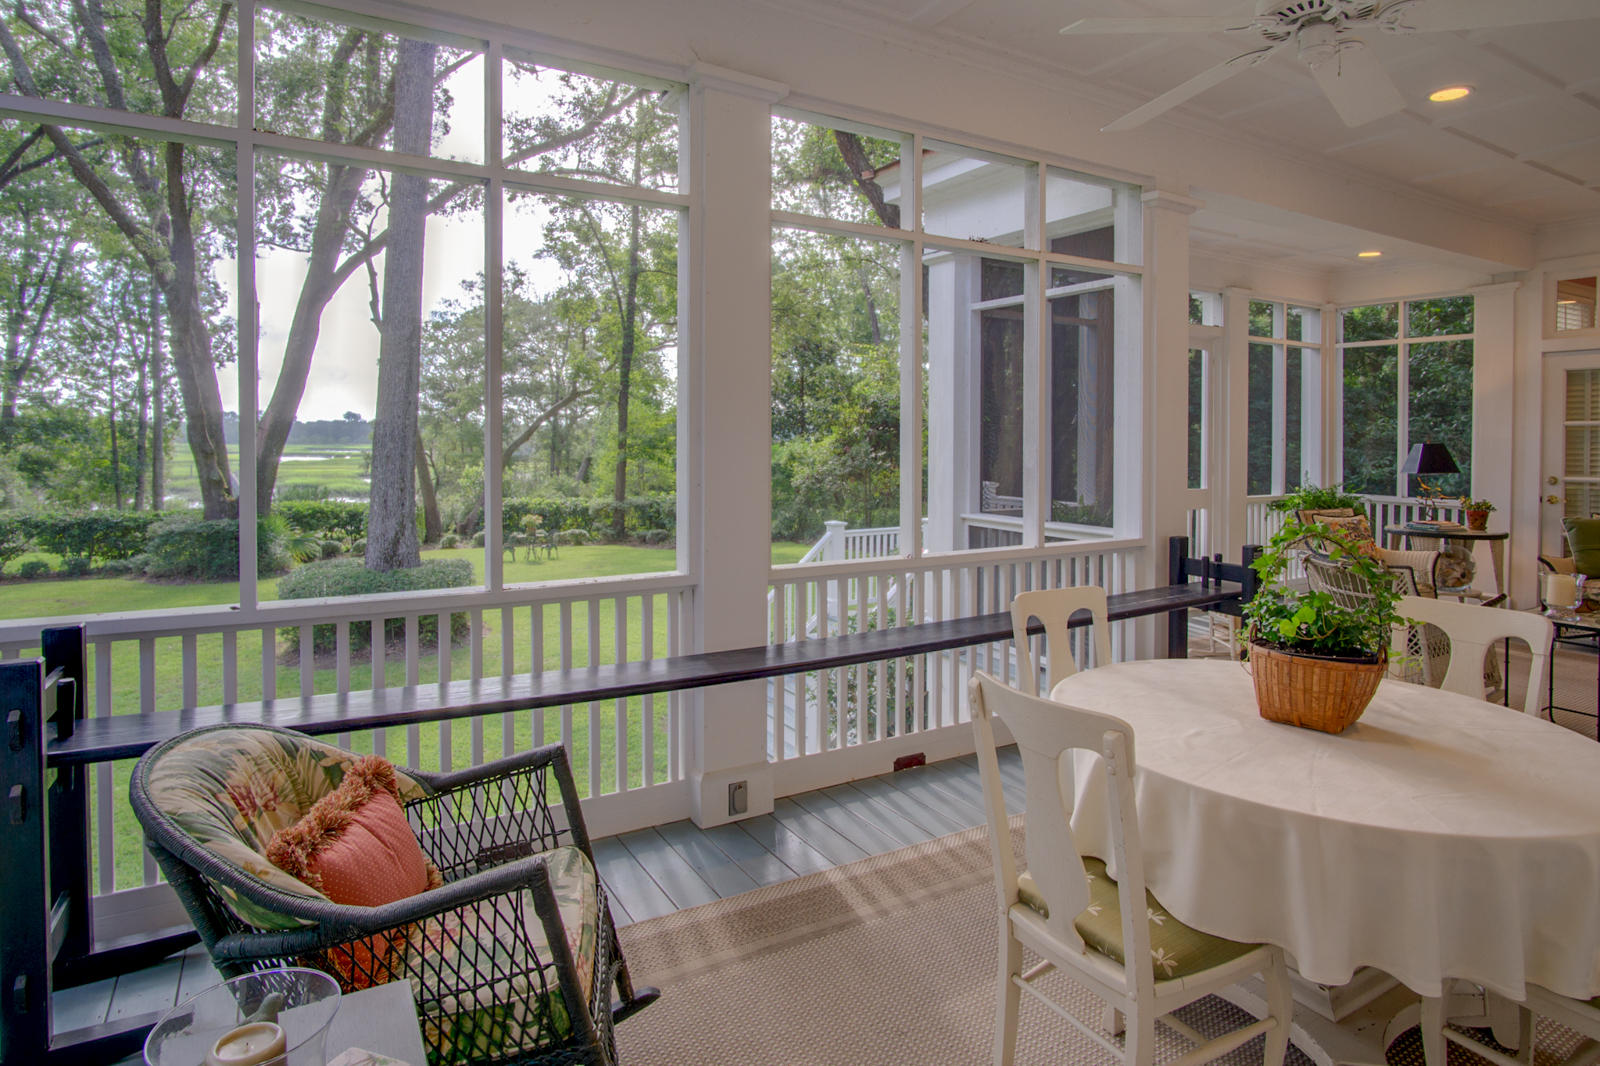 Bull Point Plantation Homes For Sale - 123 Bull Point, Seabrook, SC - 31